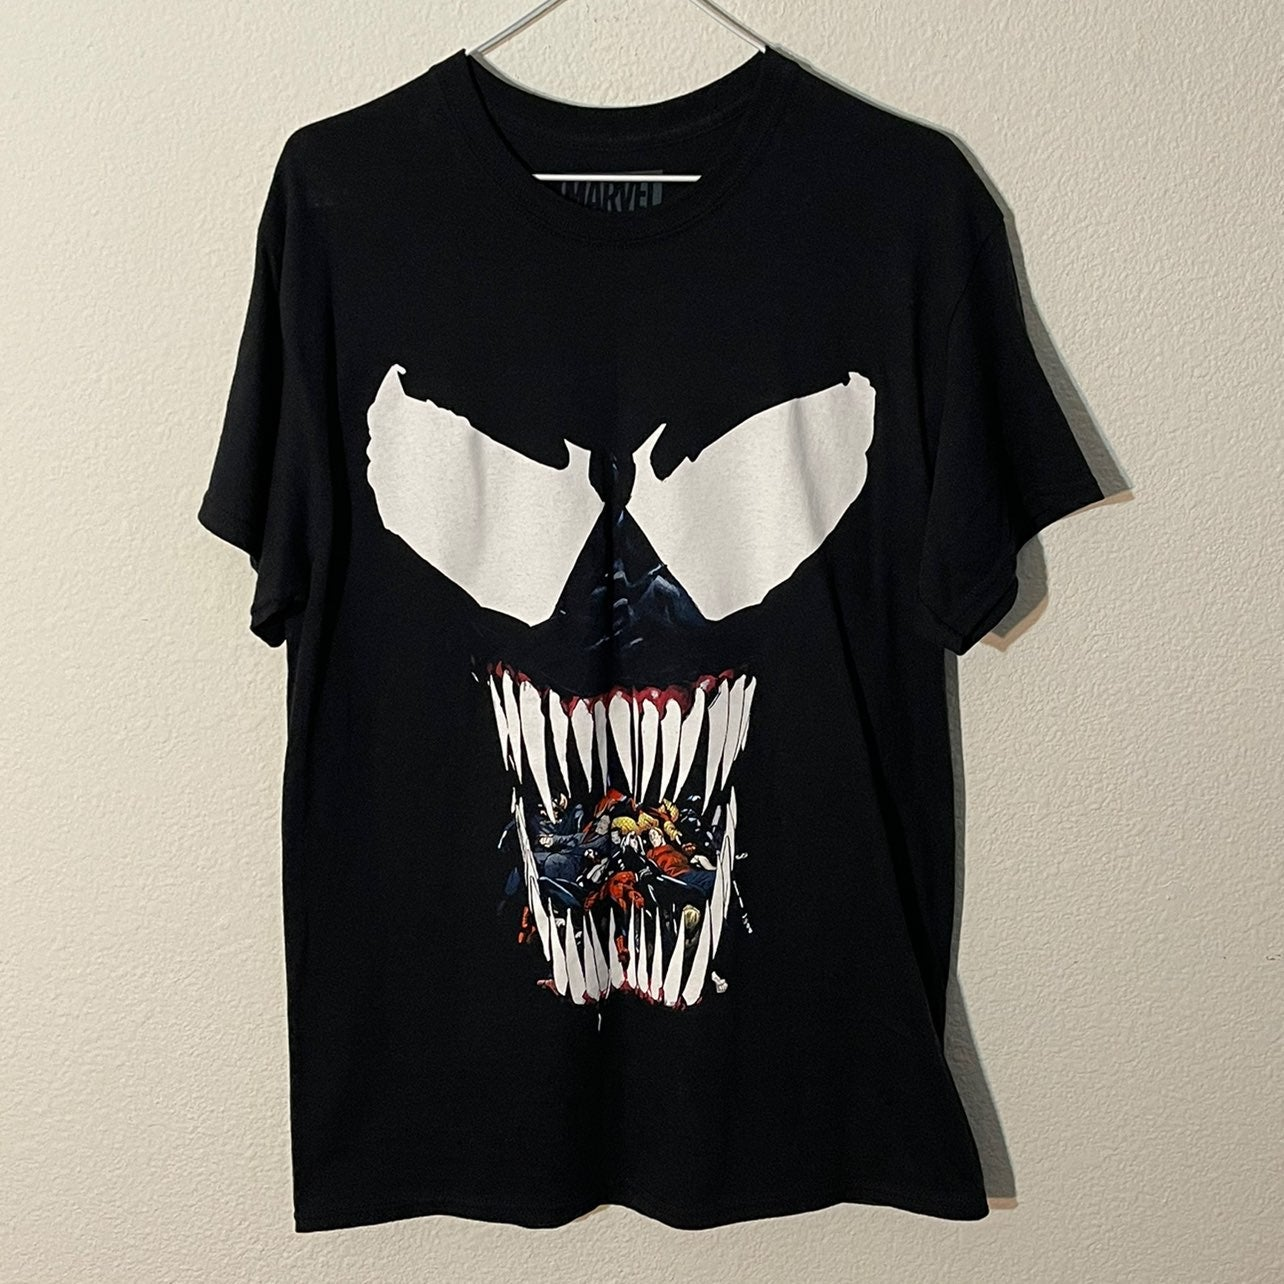 Venom/Marvel T-shirt